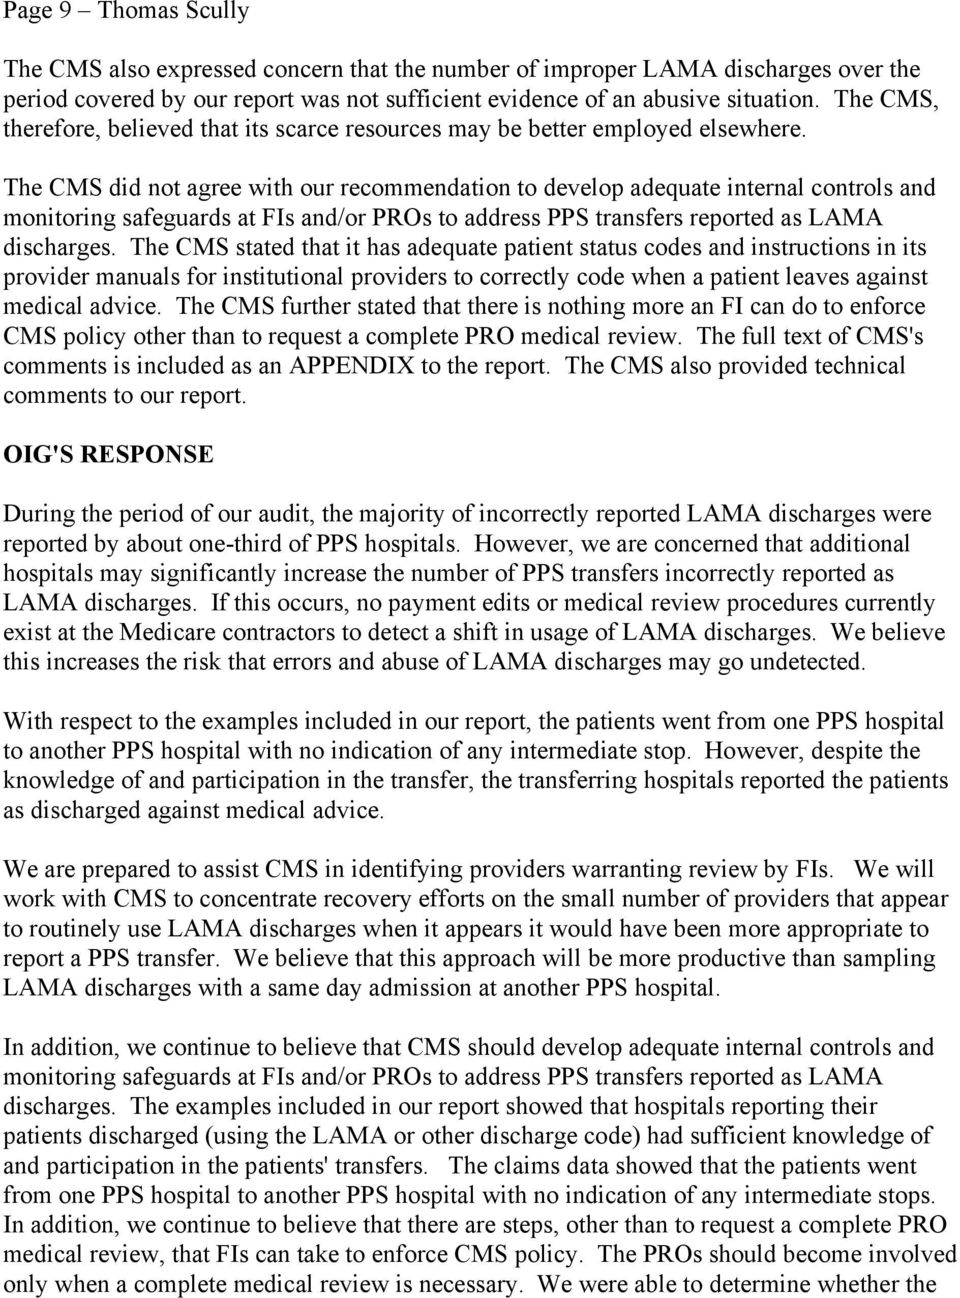 The CMS did not agree with our recommendation to develop adequate internal controls and monitoring safeguards at FIs and/or PROs to address PPS transfers reported as LAMA discharges.